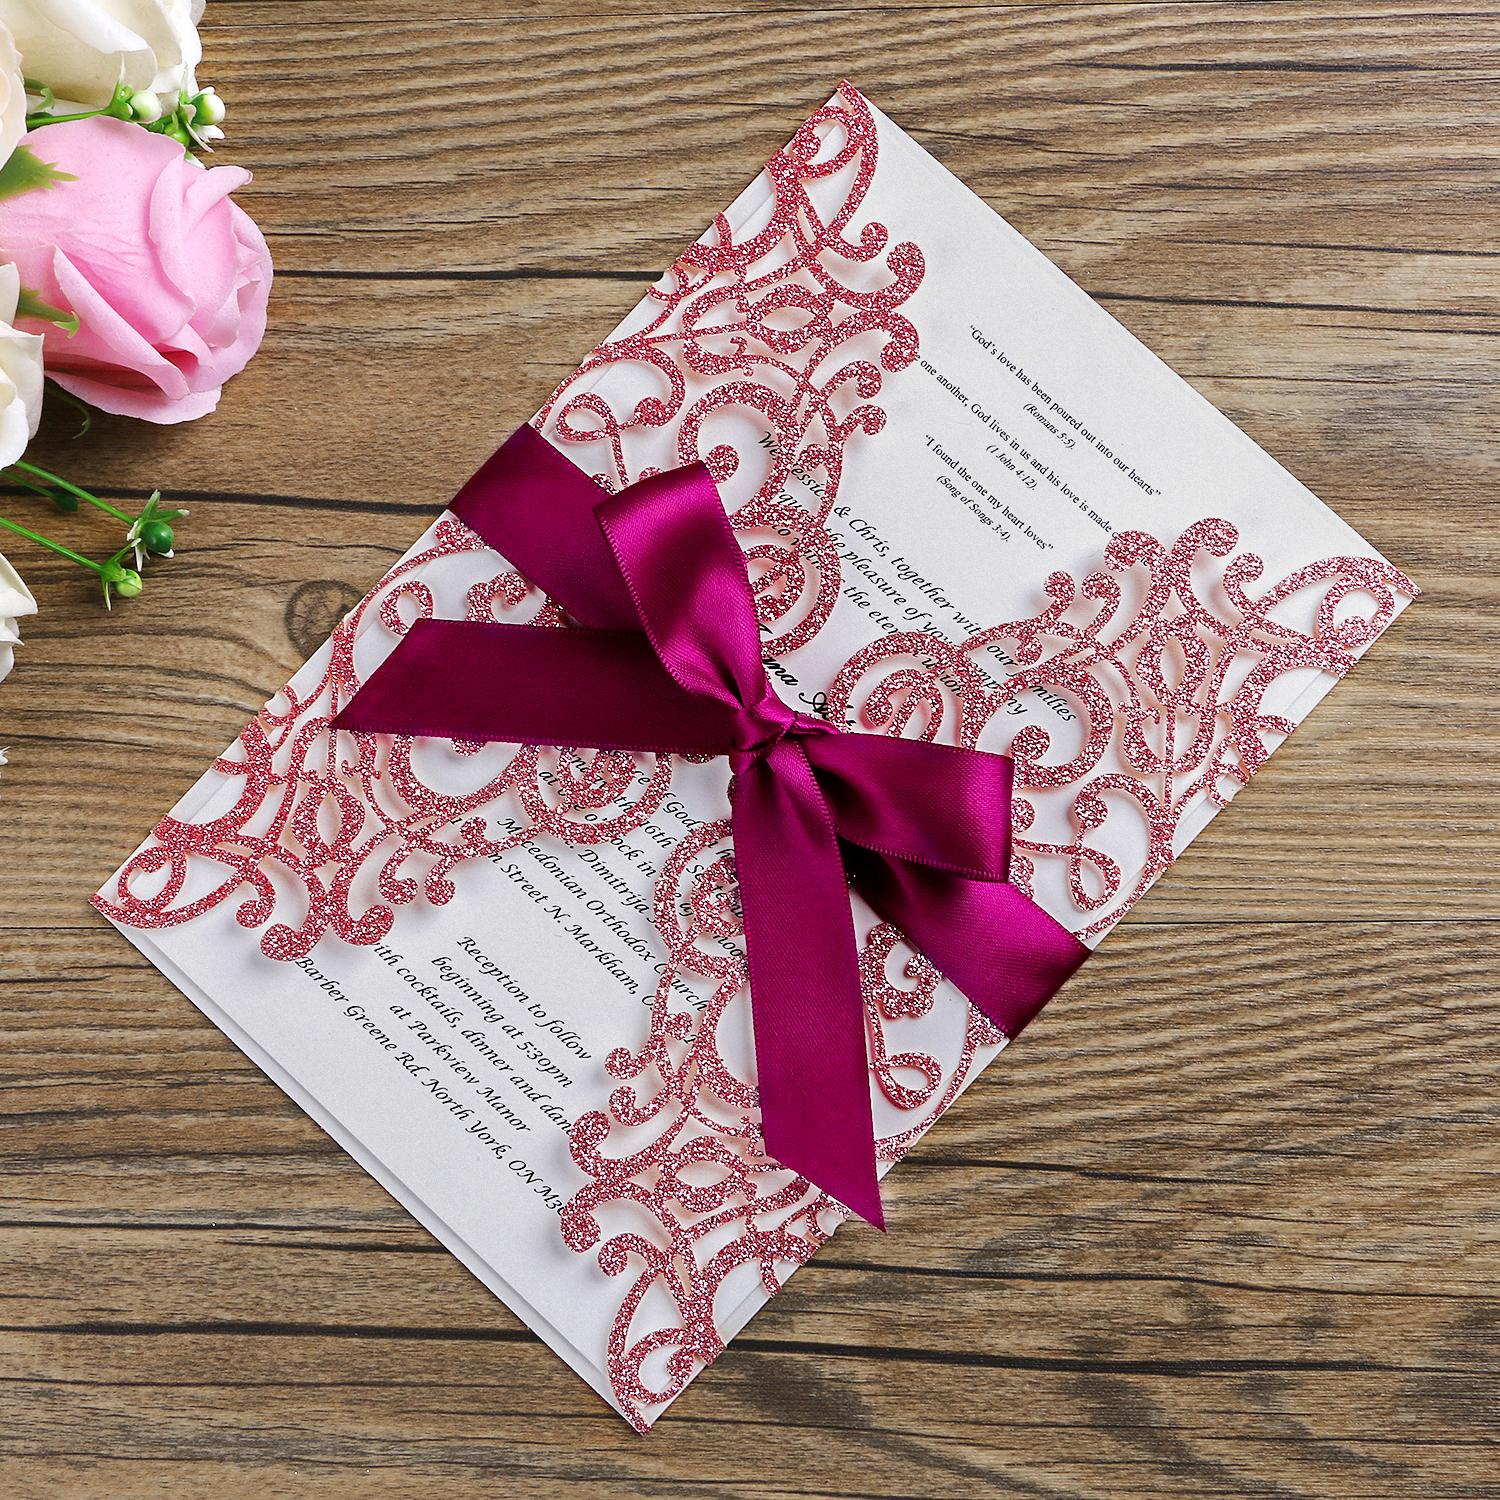 New 2019 Wedding Invitation Cards Apple Gold Solid Bow Laser Cutting Invitation Pocket Lace Elegant Ball Party Invitation Wholesale Ag016